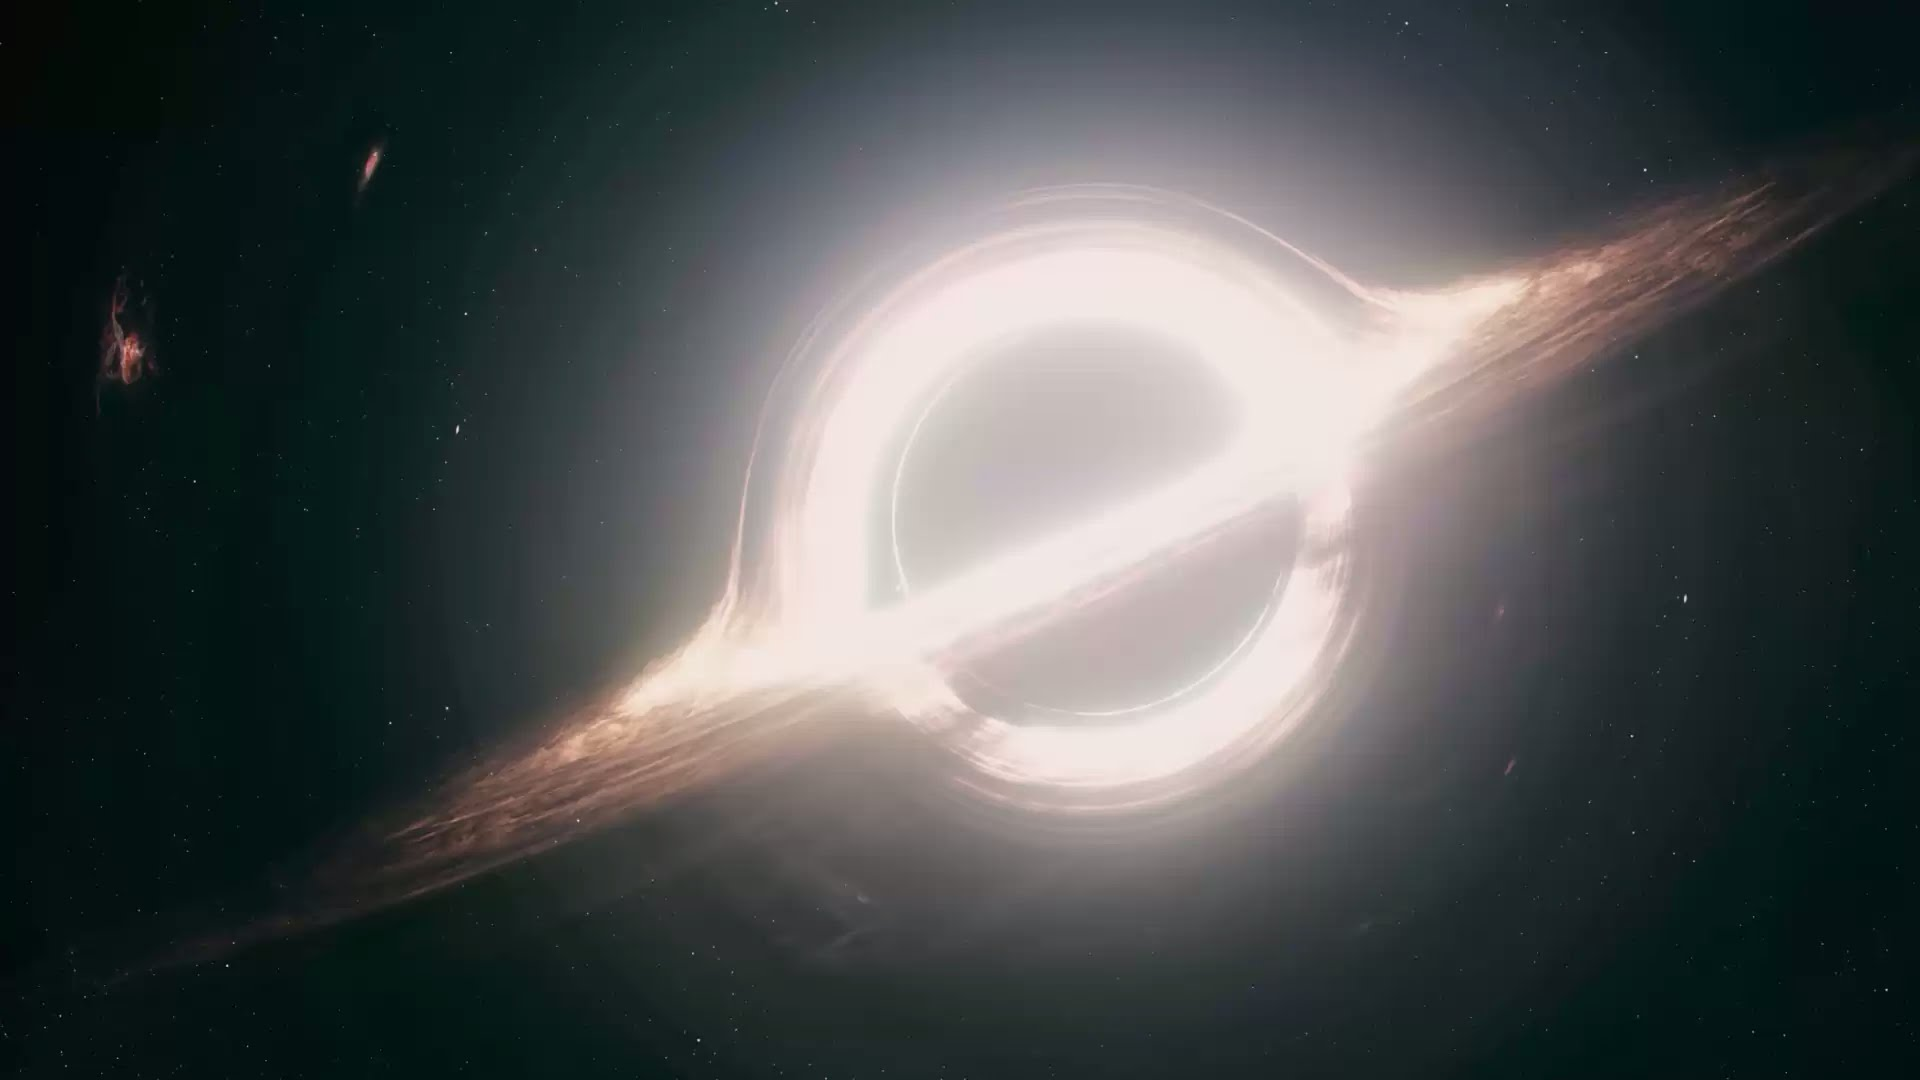 Interstellar Wallpaper 1920x1080 57047